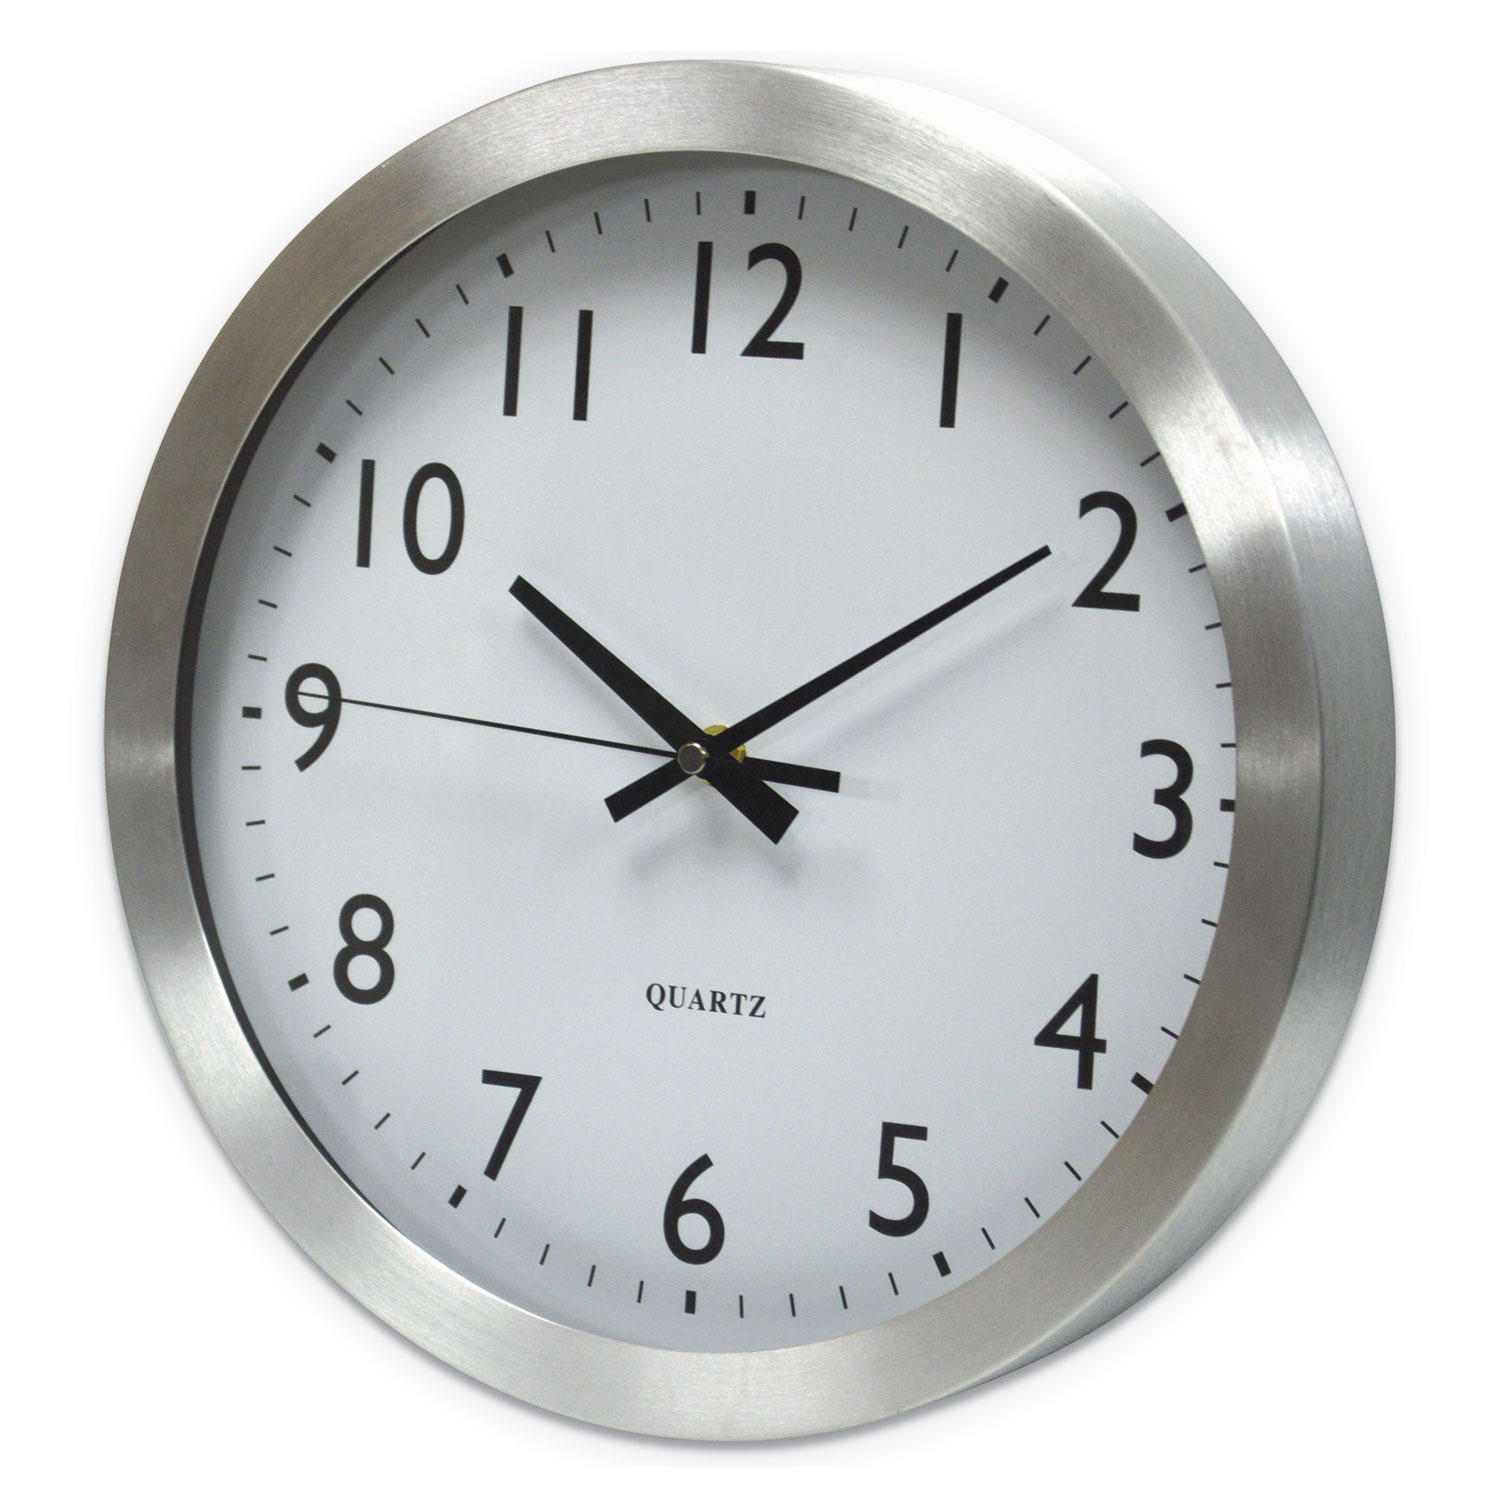 Brushed Aluminum Wall Clock, 12